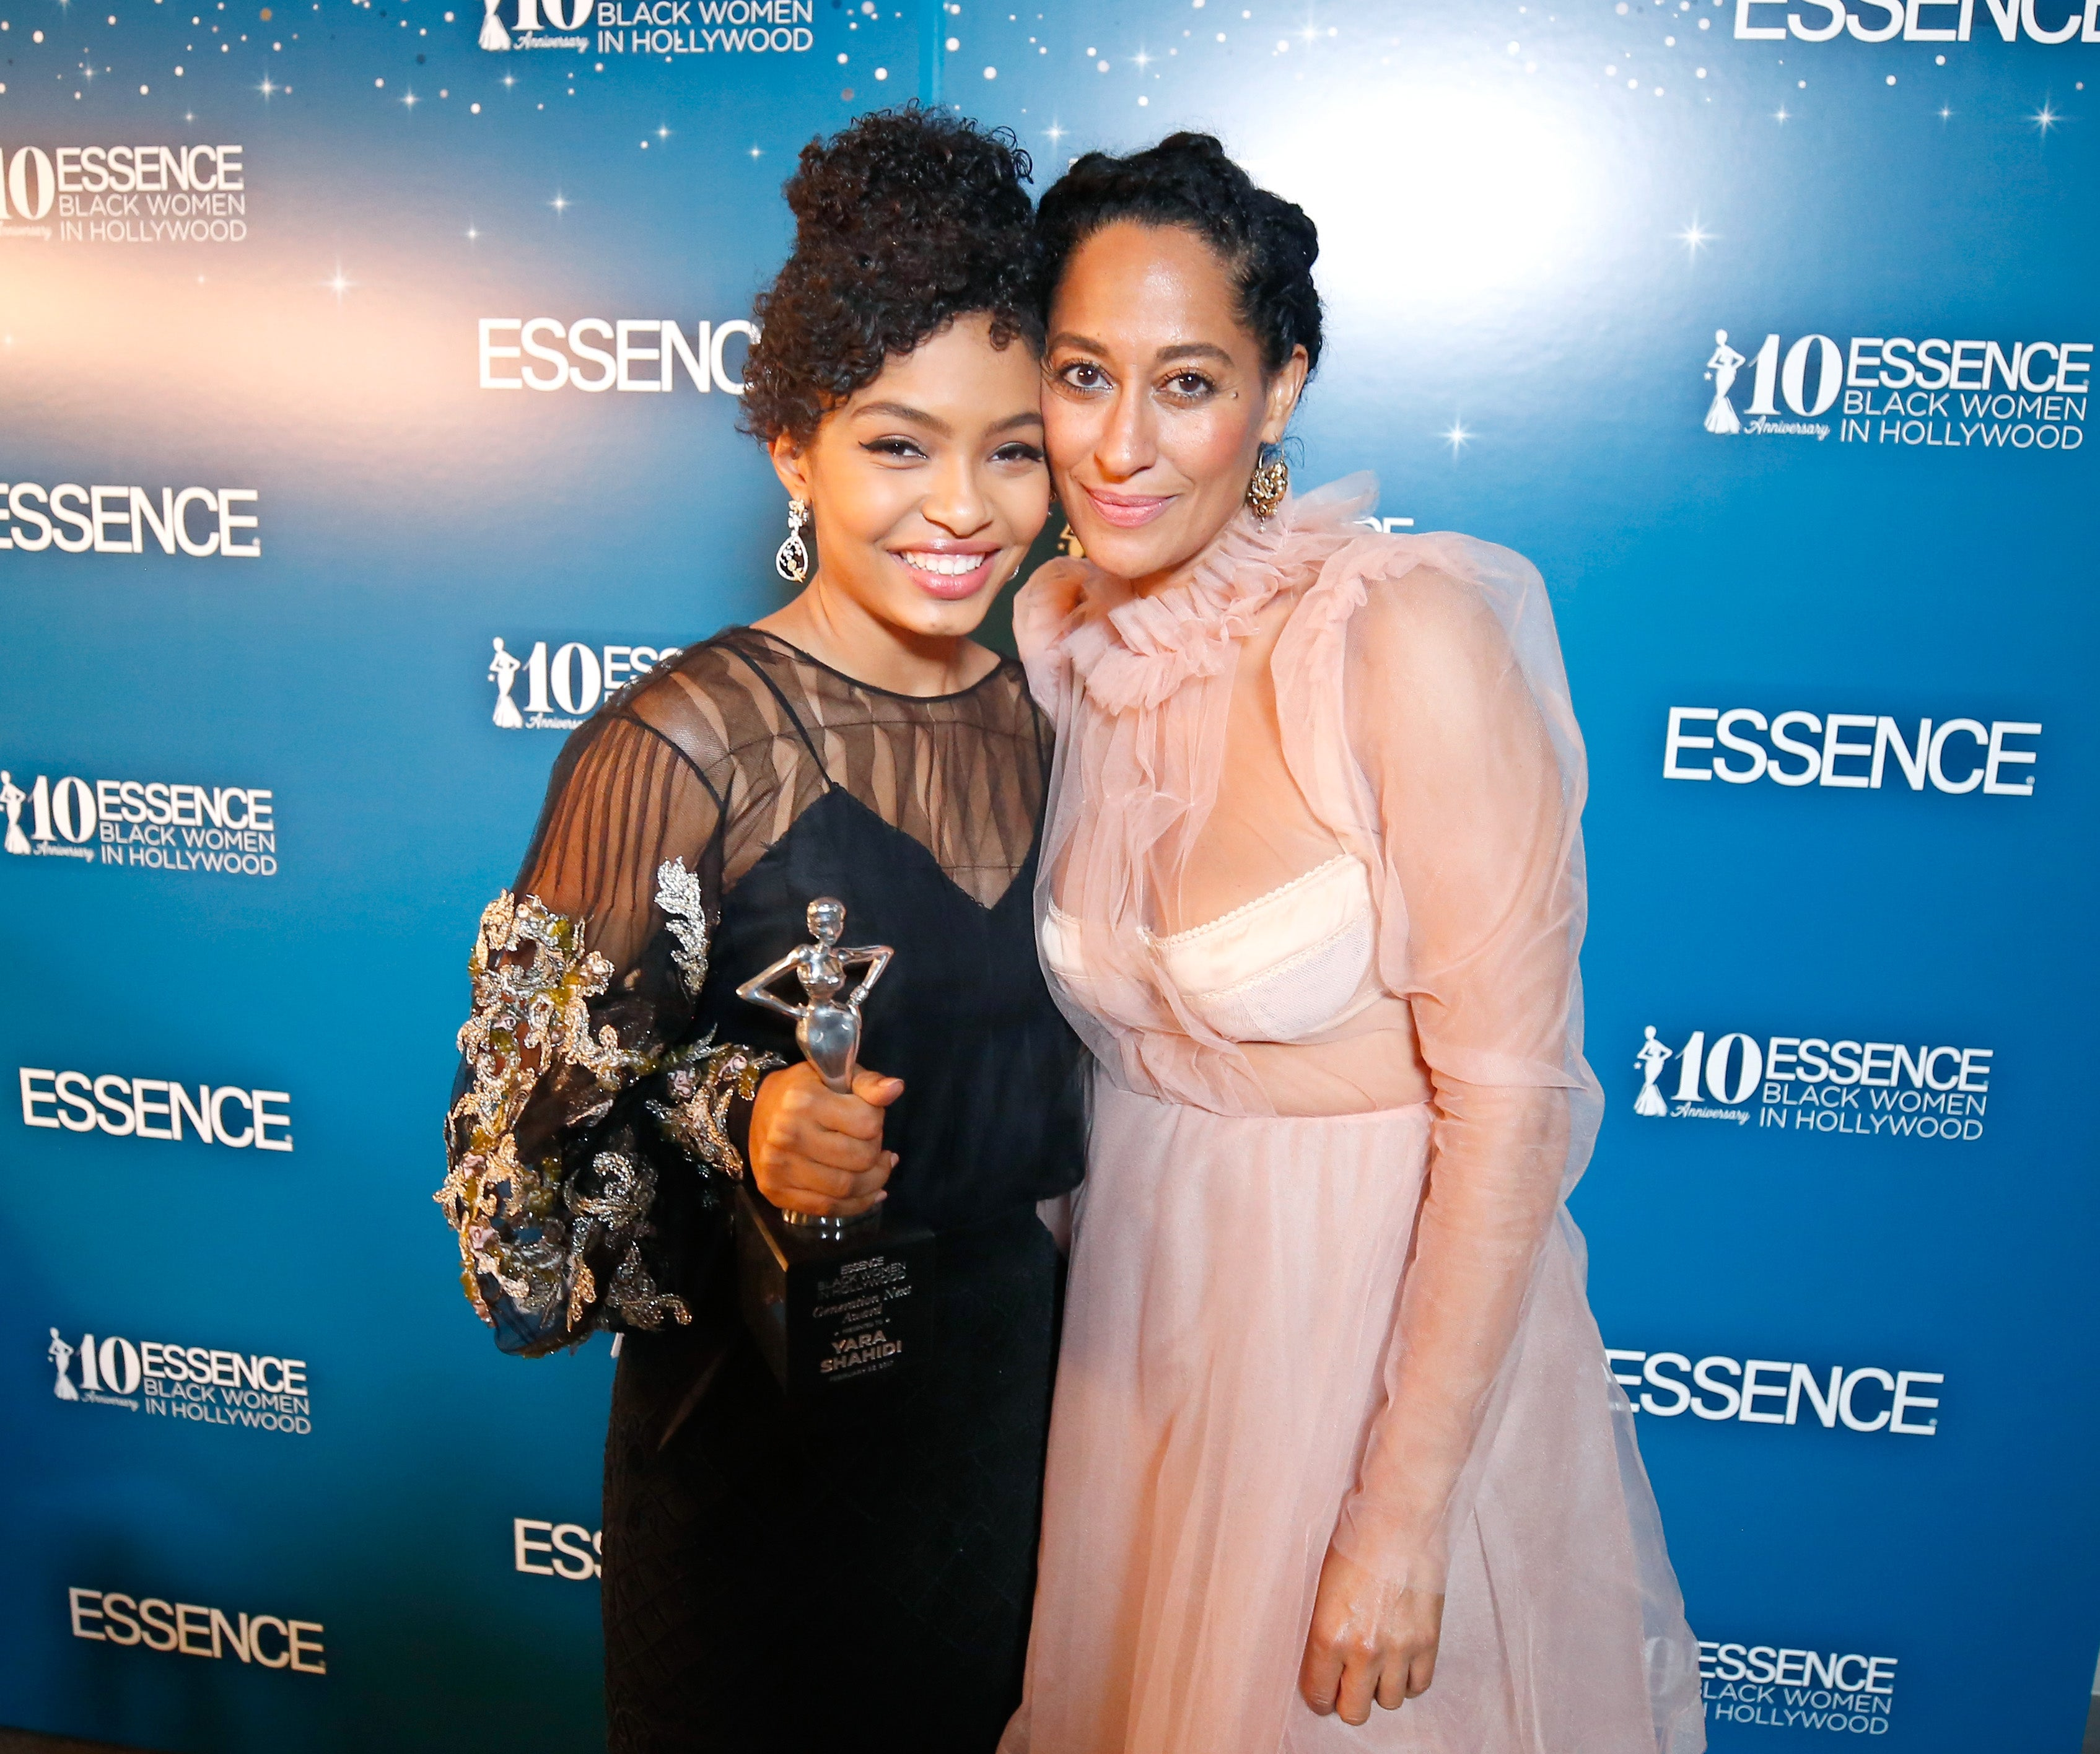 Read The Touching Letter Tracee Ellis Ross Wrote To Her 'Black-ish' Co-Star Yara Shahidi